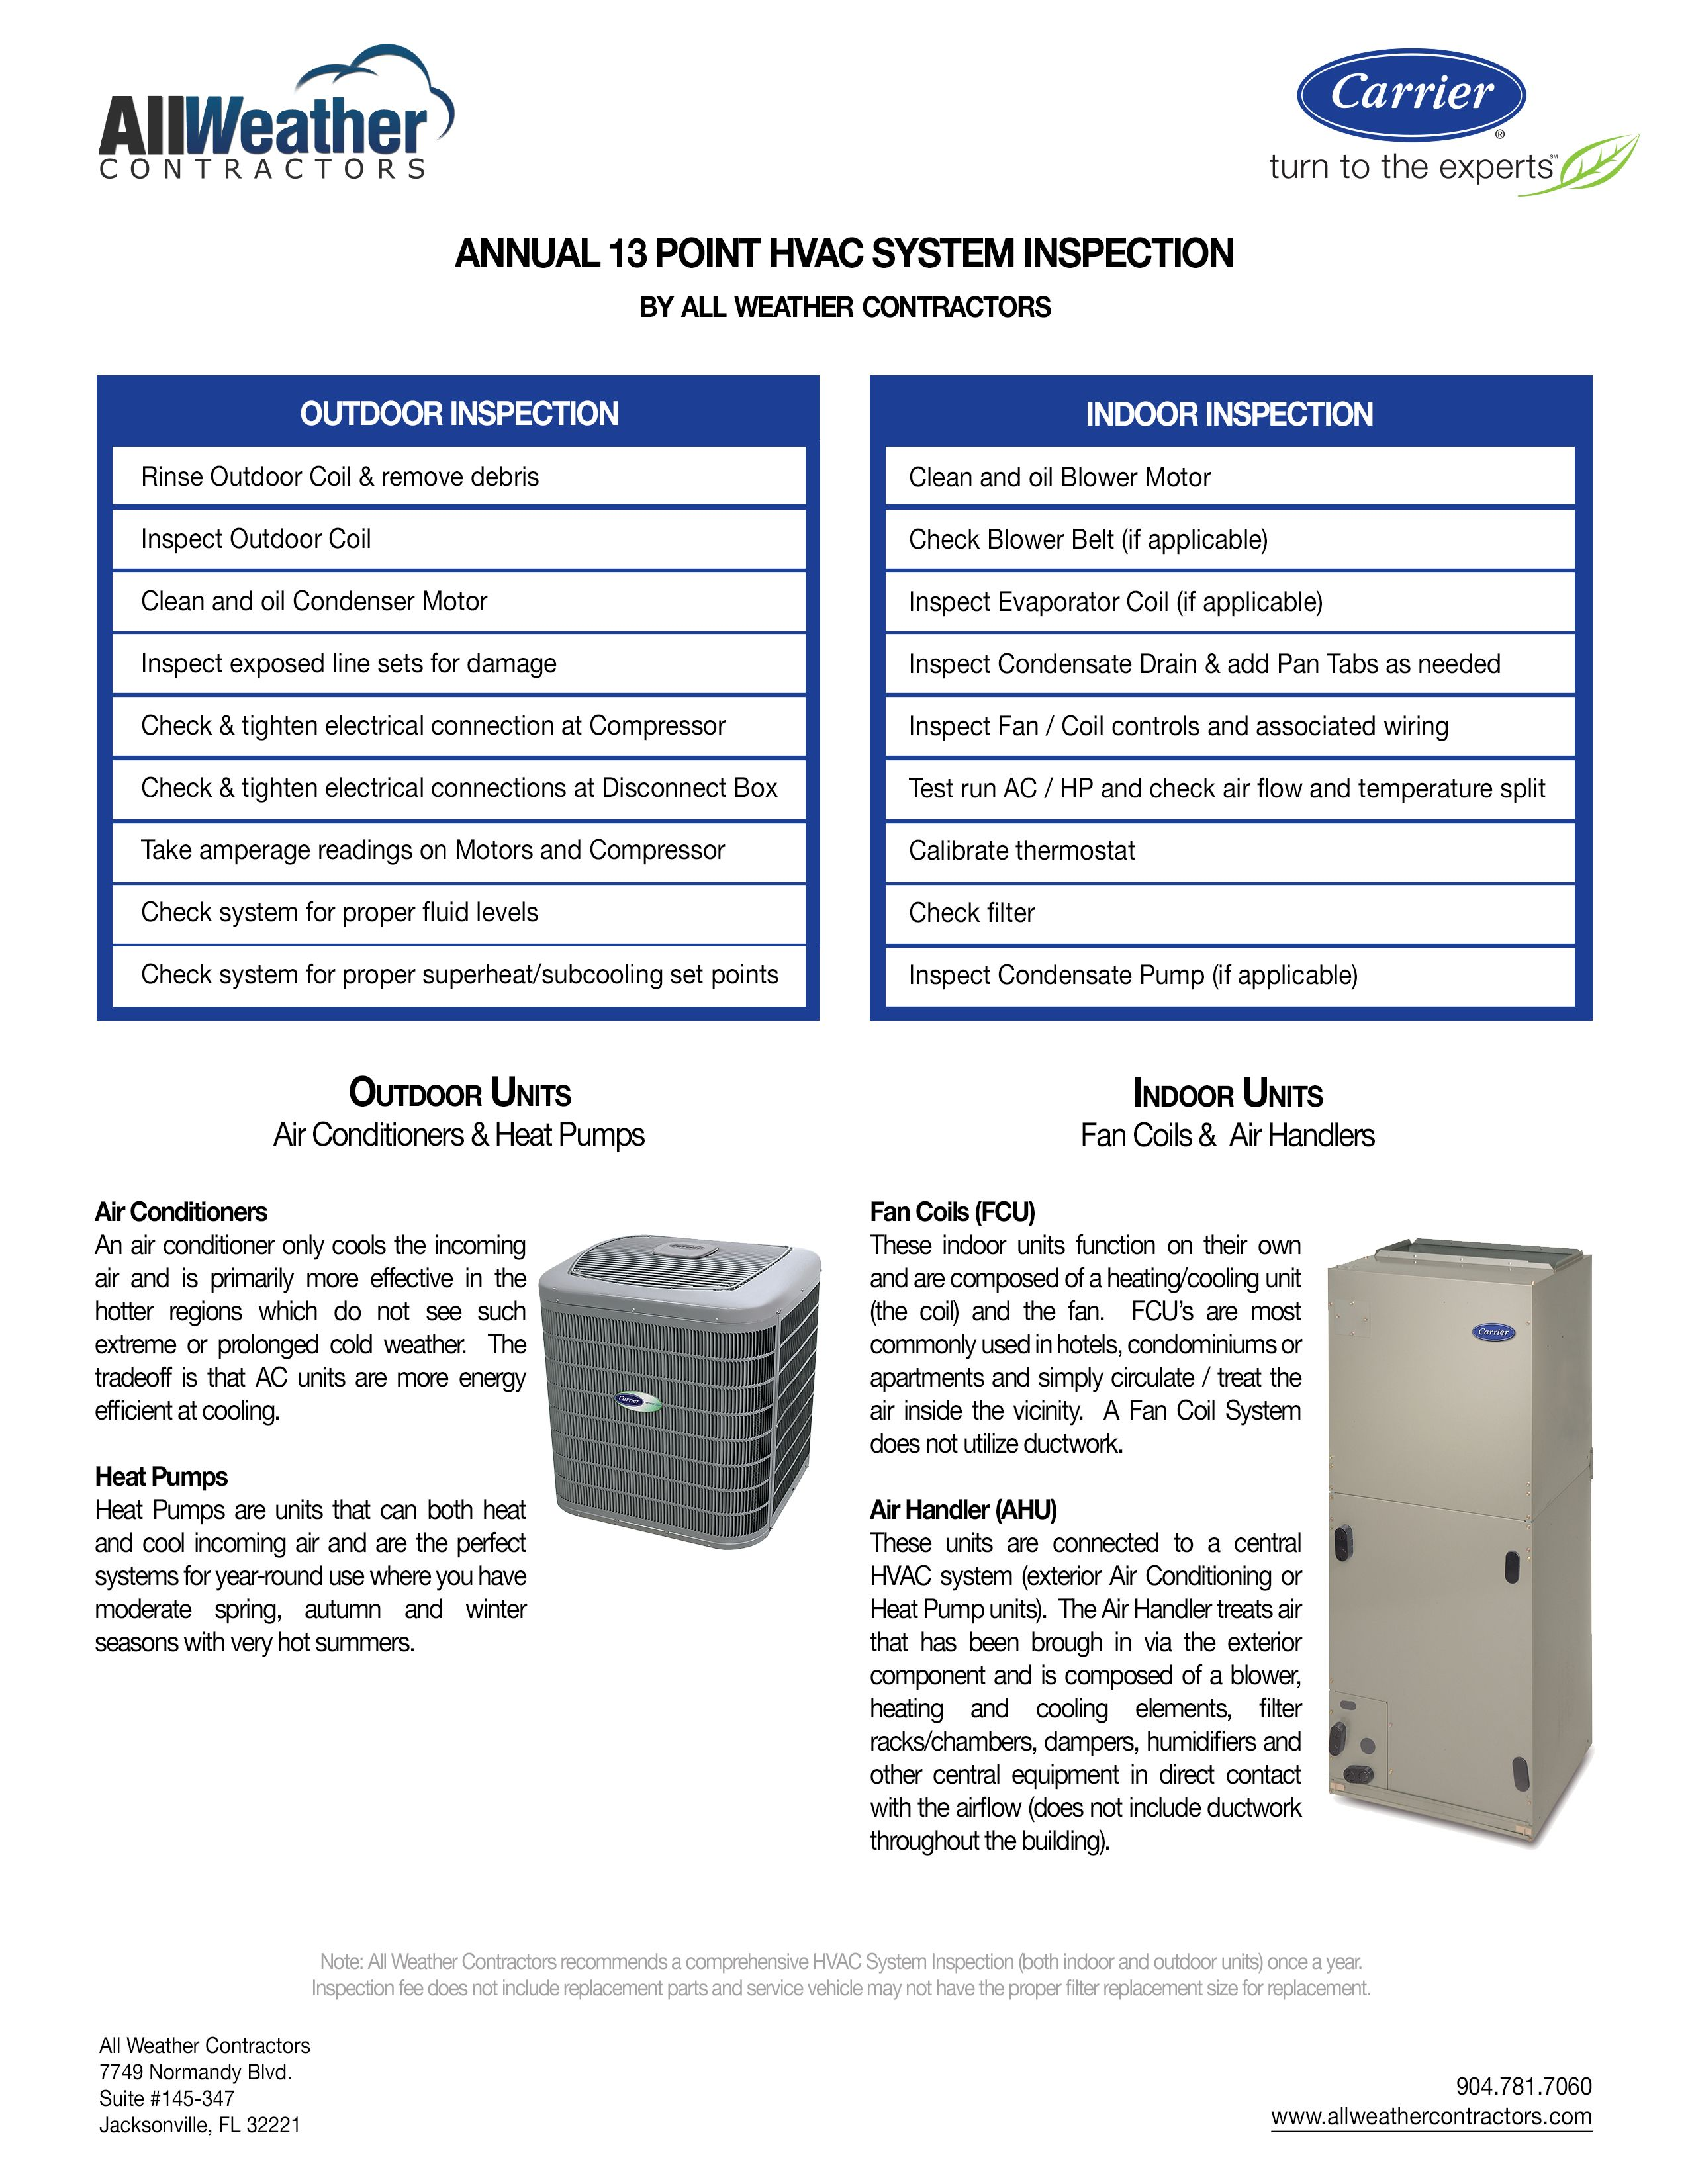 13 point hvac system inspection which comes with each and every